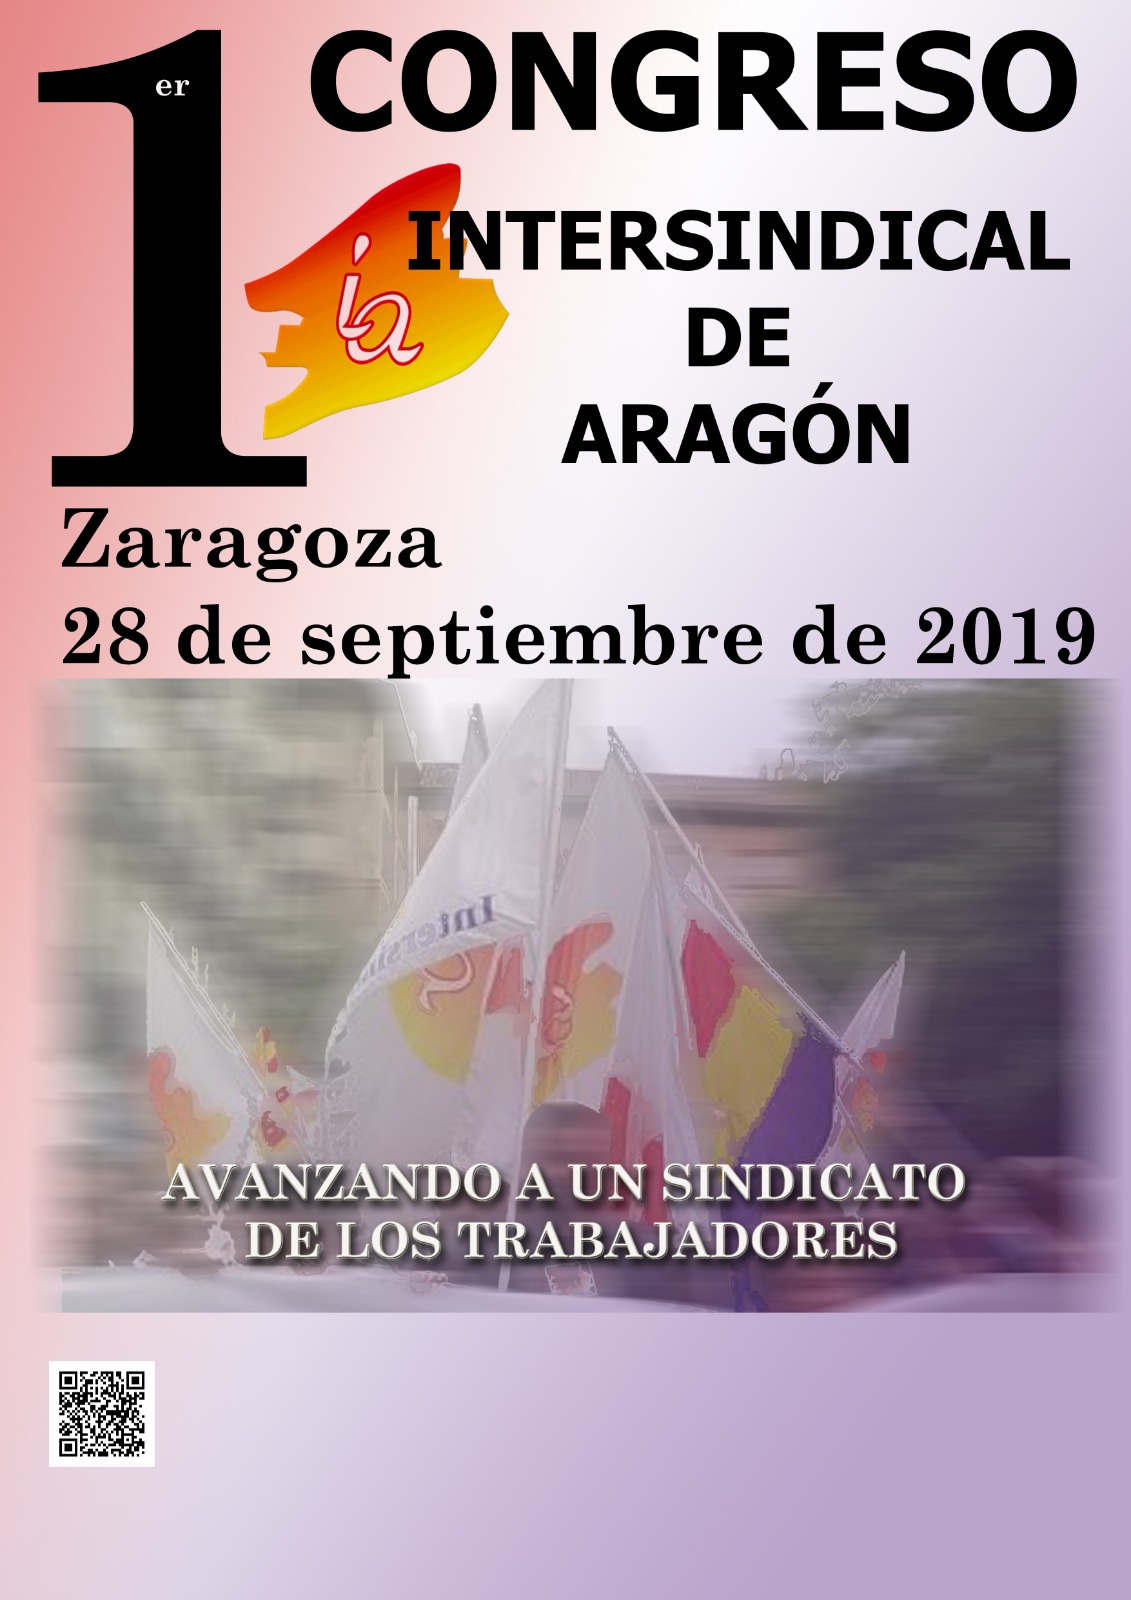 1º CONGRESO-2019. INTERSINDICAL DE ARAGON